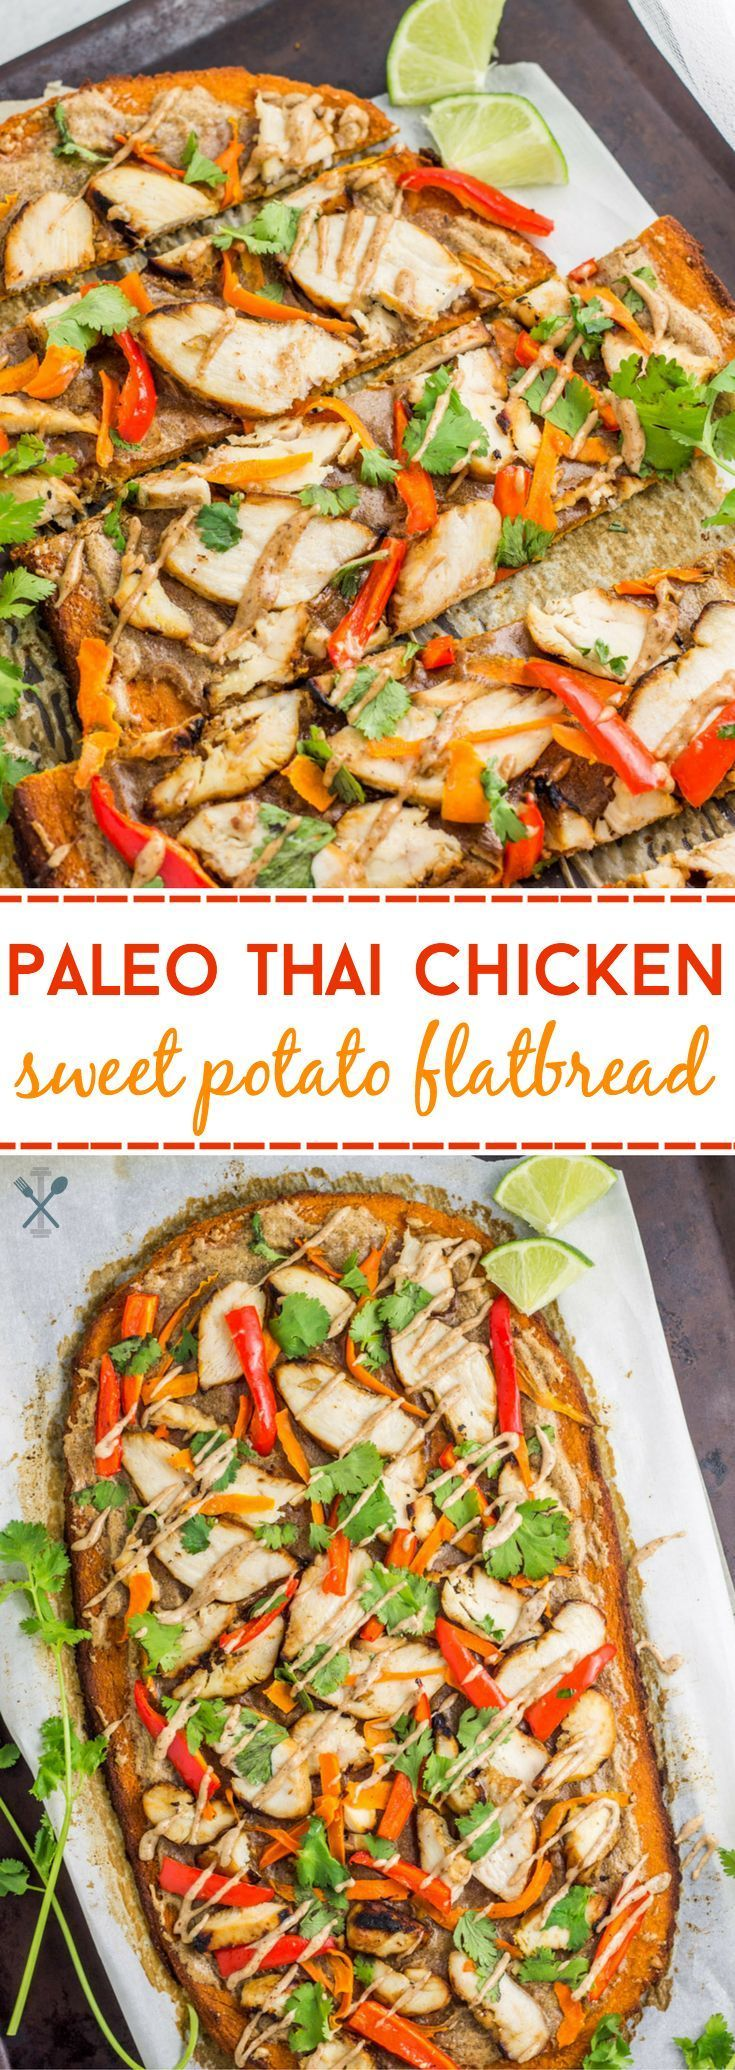 This paleo thai chicken sweet potato flatbread is gluten free, dairy free, and the perfect healthy meal or appetizer